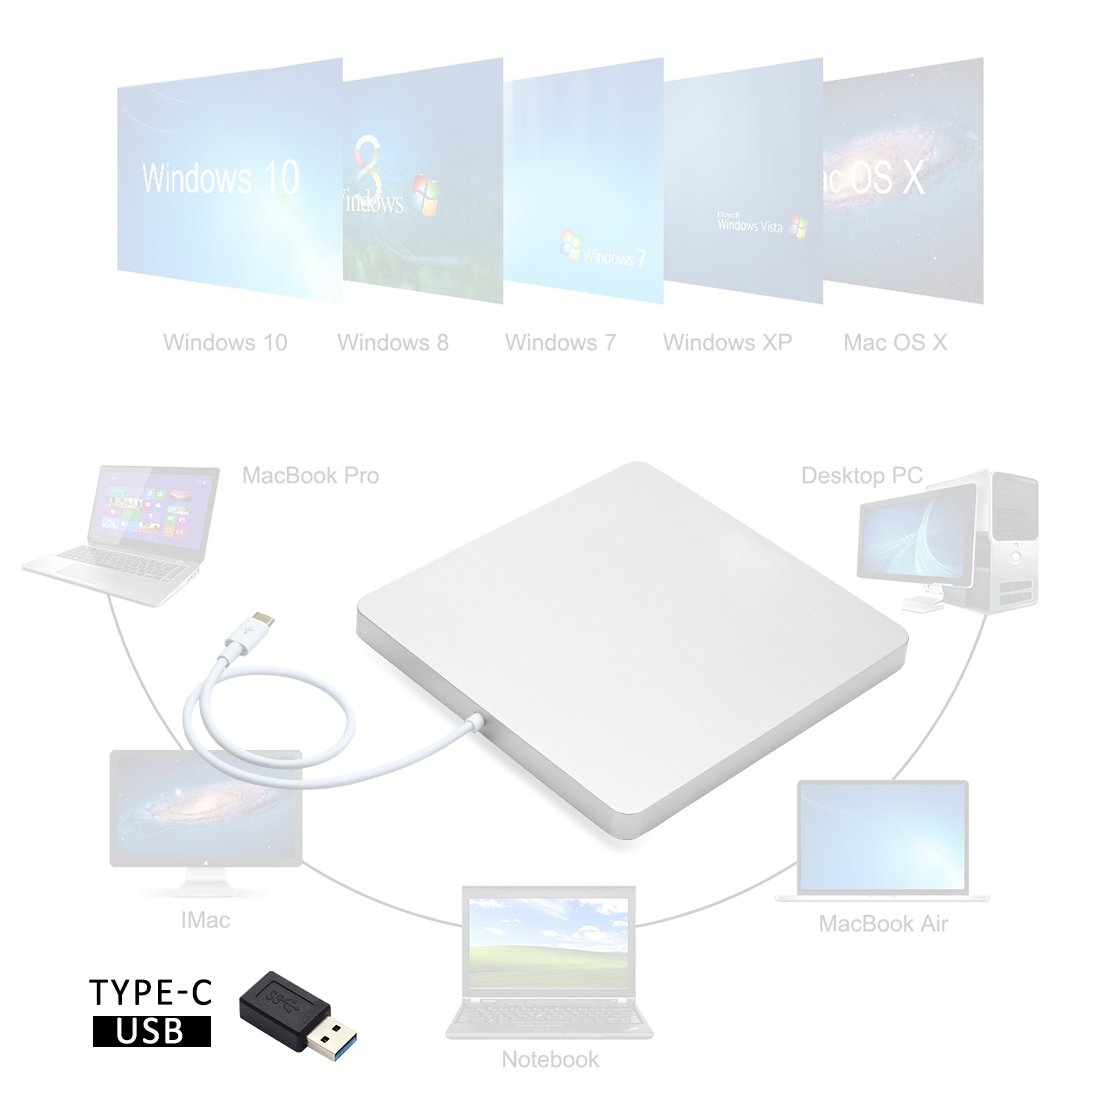 USB-C Superdrive External Drive Burner DVD CD VCD Reader +/- RW Rewriter/Writer/Player with High Speed Data for latest Mac/MacBook Pro/Laptop/Desktop Support Windows/Mac OSX (silver) by fhong (Image #2)